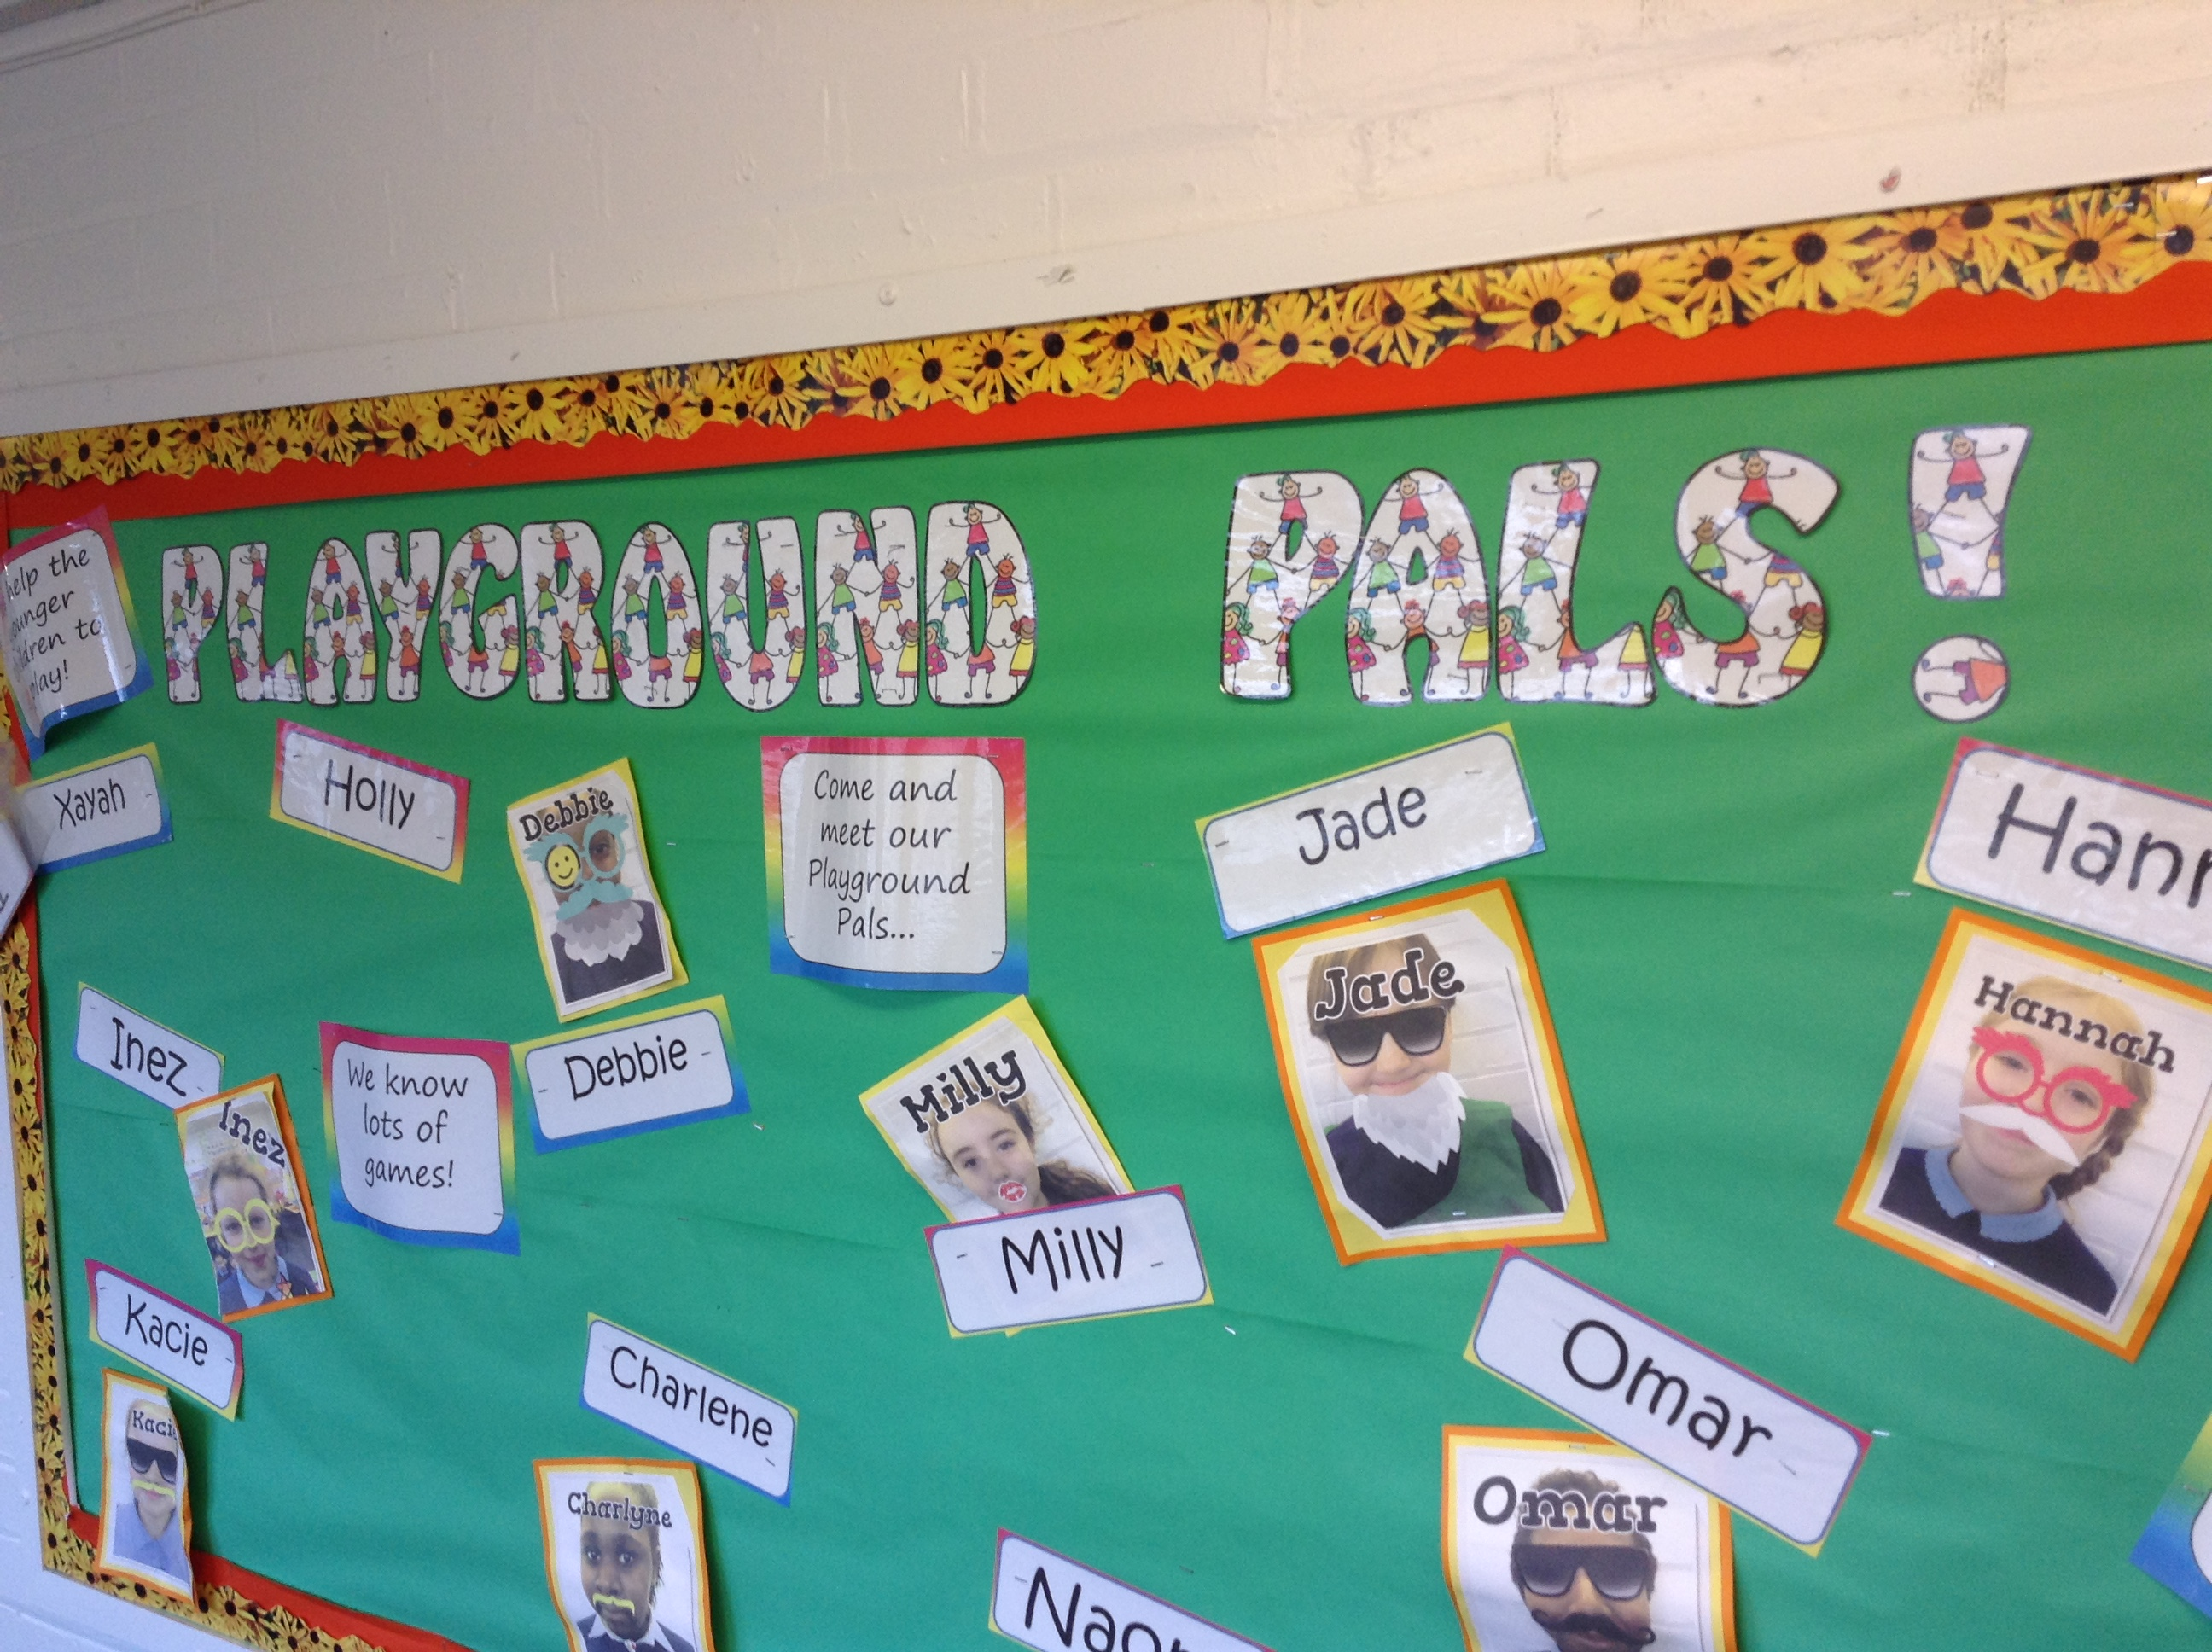 Here is our display which shows who our Key Stage 1 and 2 Playground Pals are.